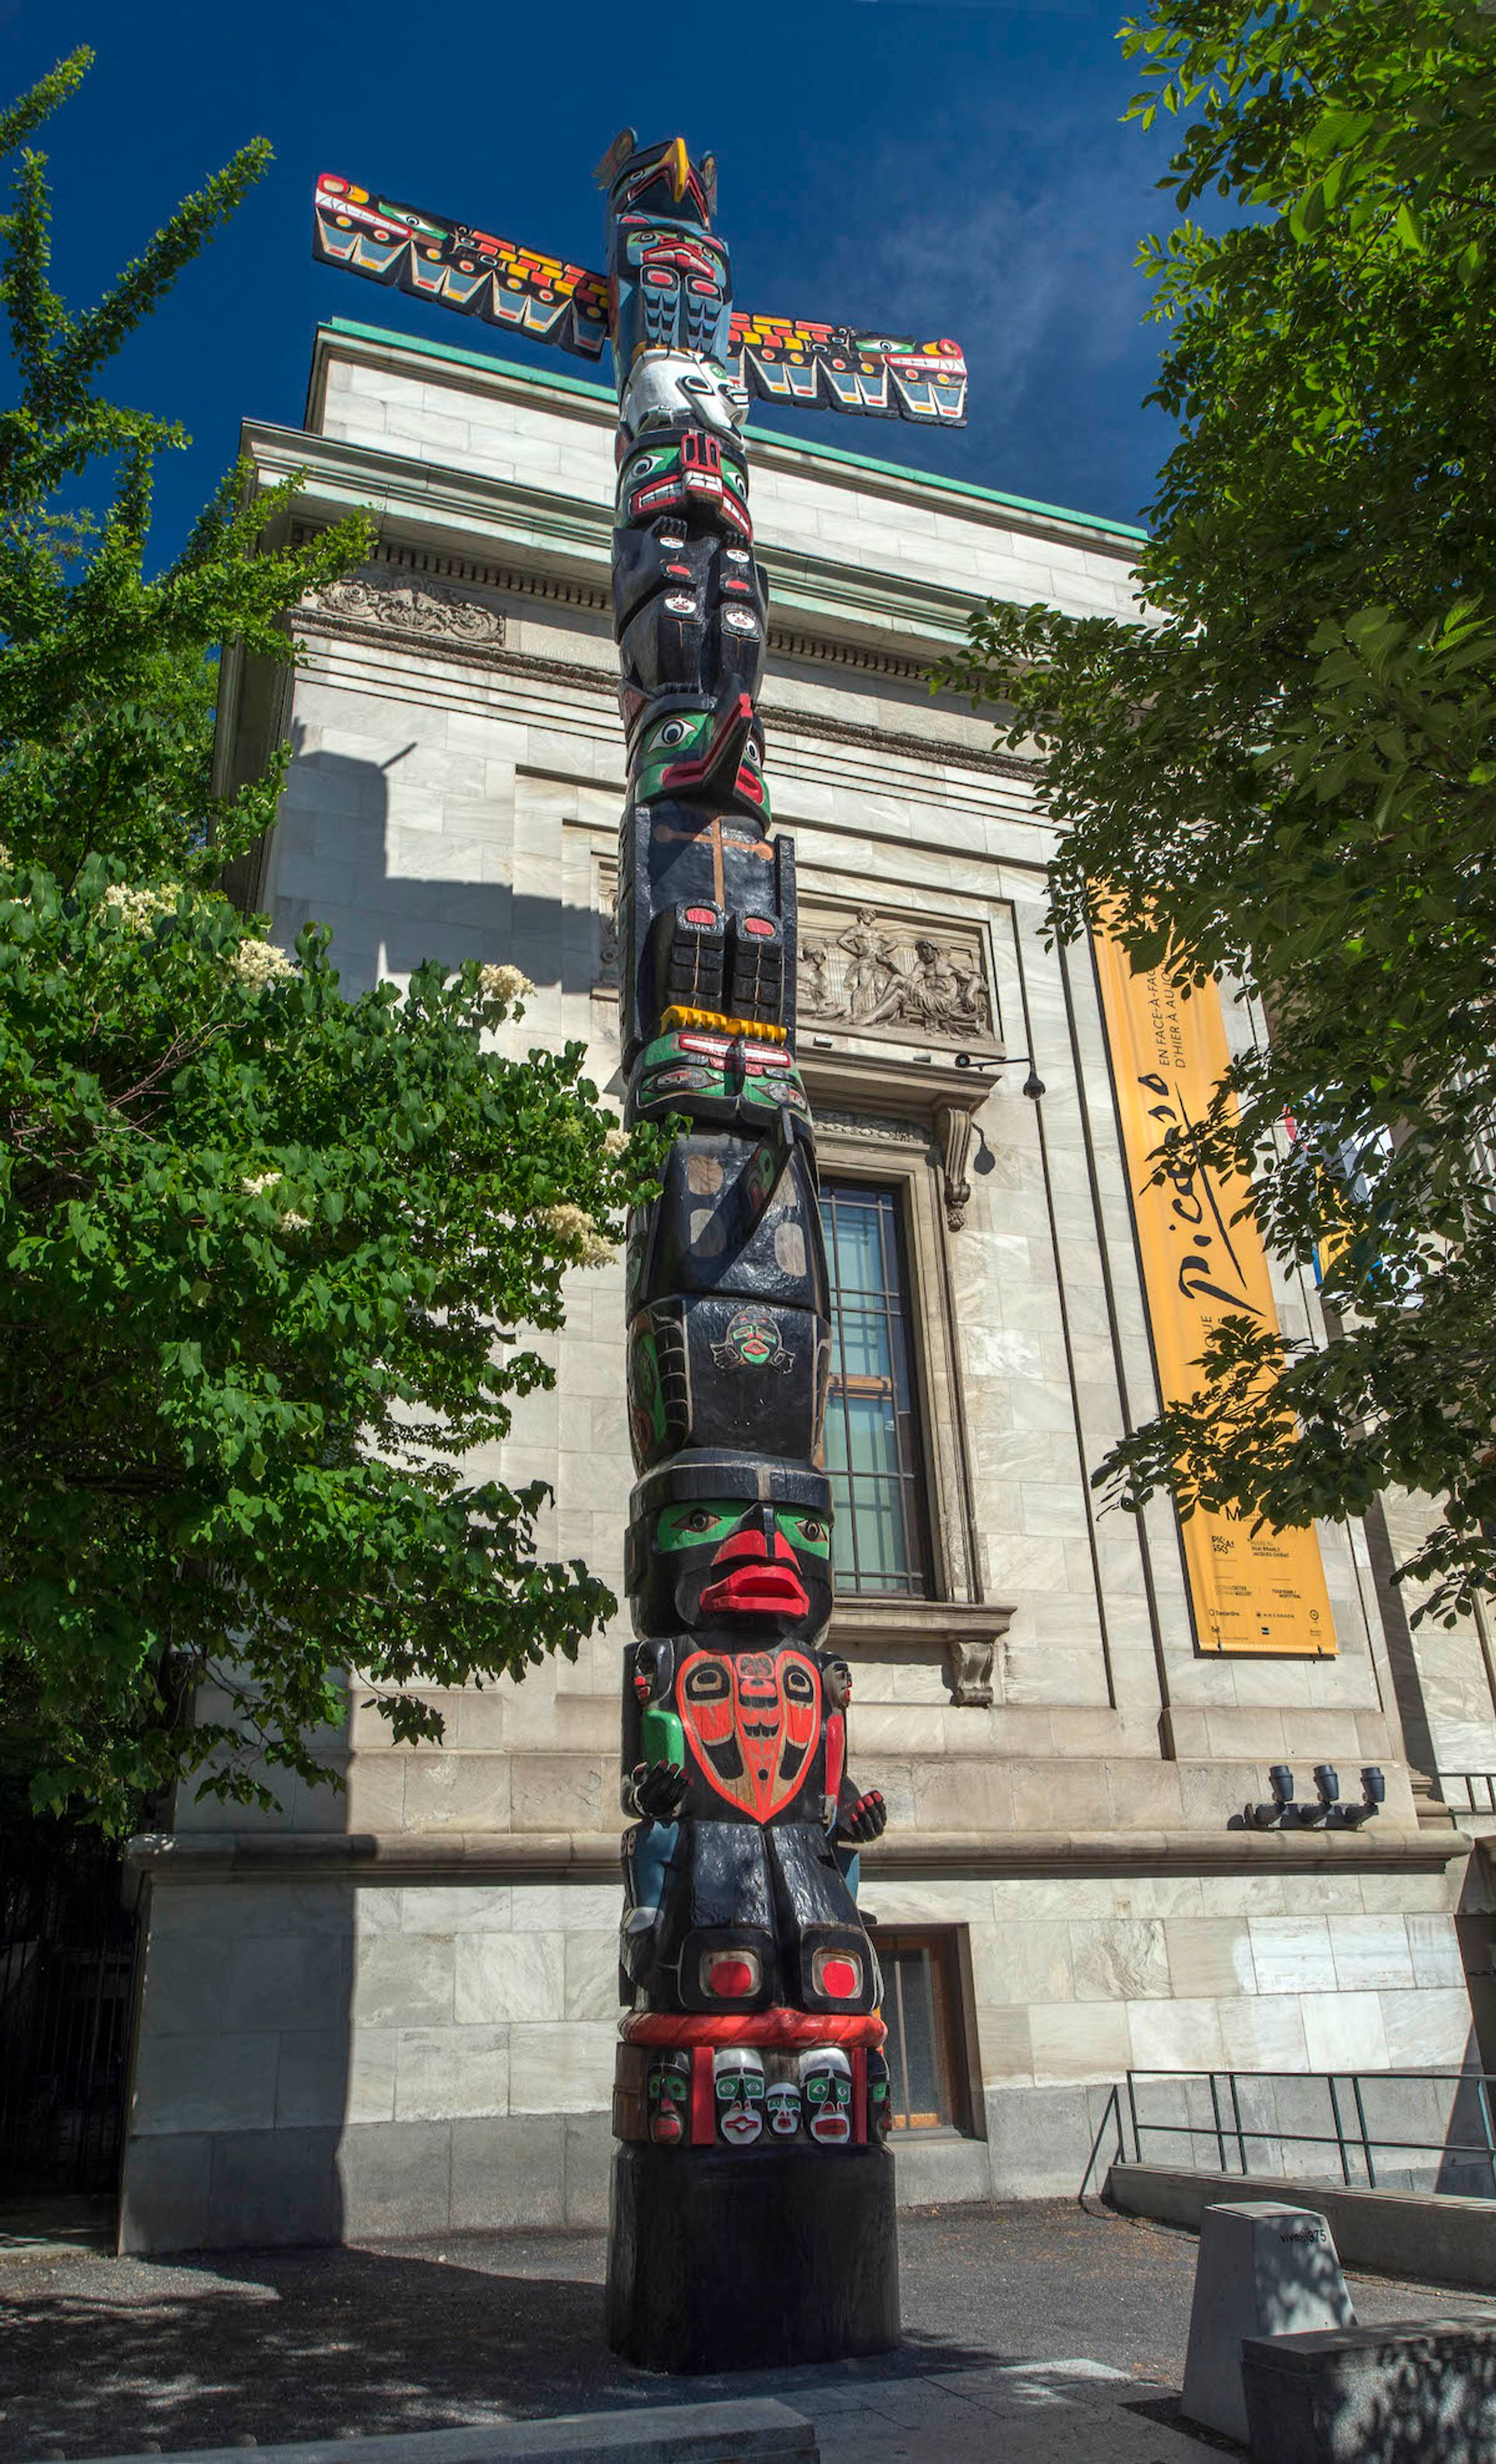 Charles Joseph's Residential School Totem Pole (2014–16) before the left hand on the lower portion of the work was stolen Courtesy of the The Montreal Museum of Fine Arts